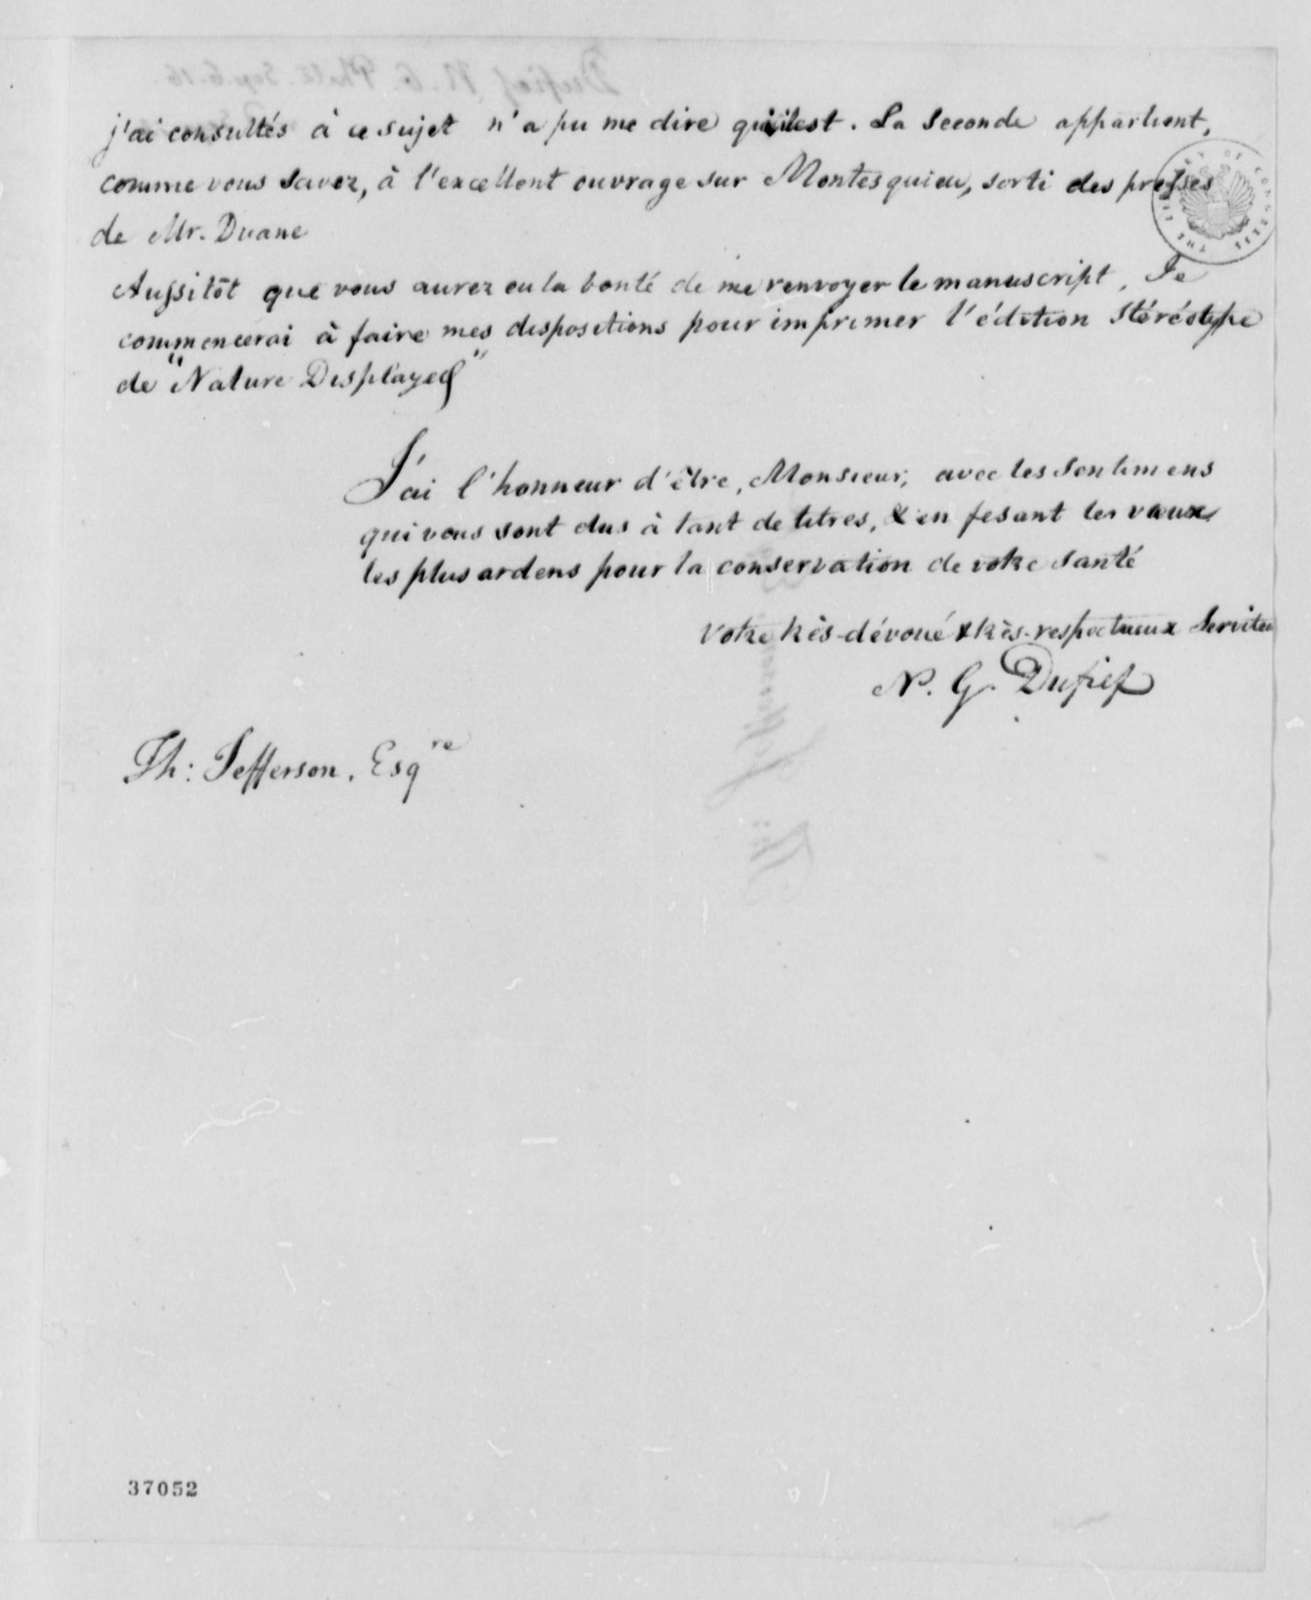 Nicholas Gouin Dufief to Thomas Jefferson, September 6, 1816, in French and English